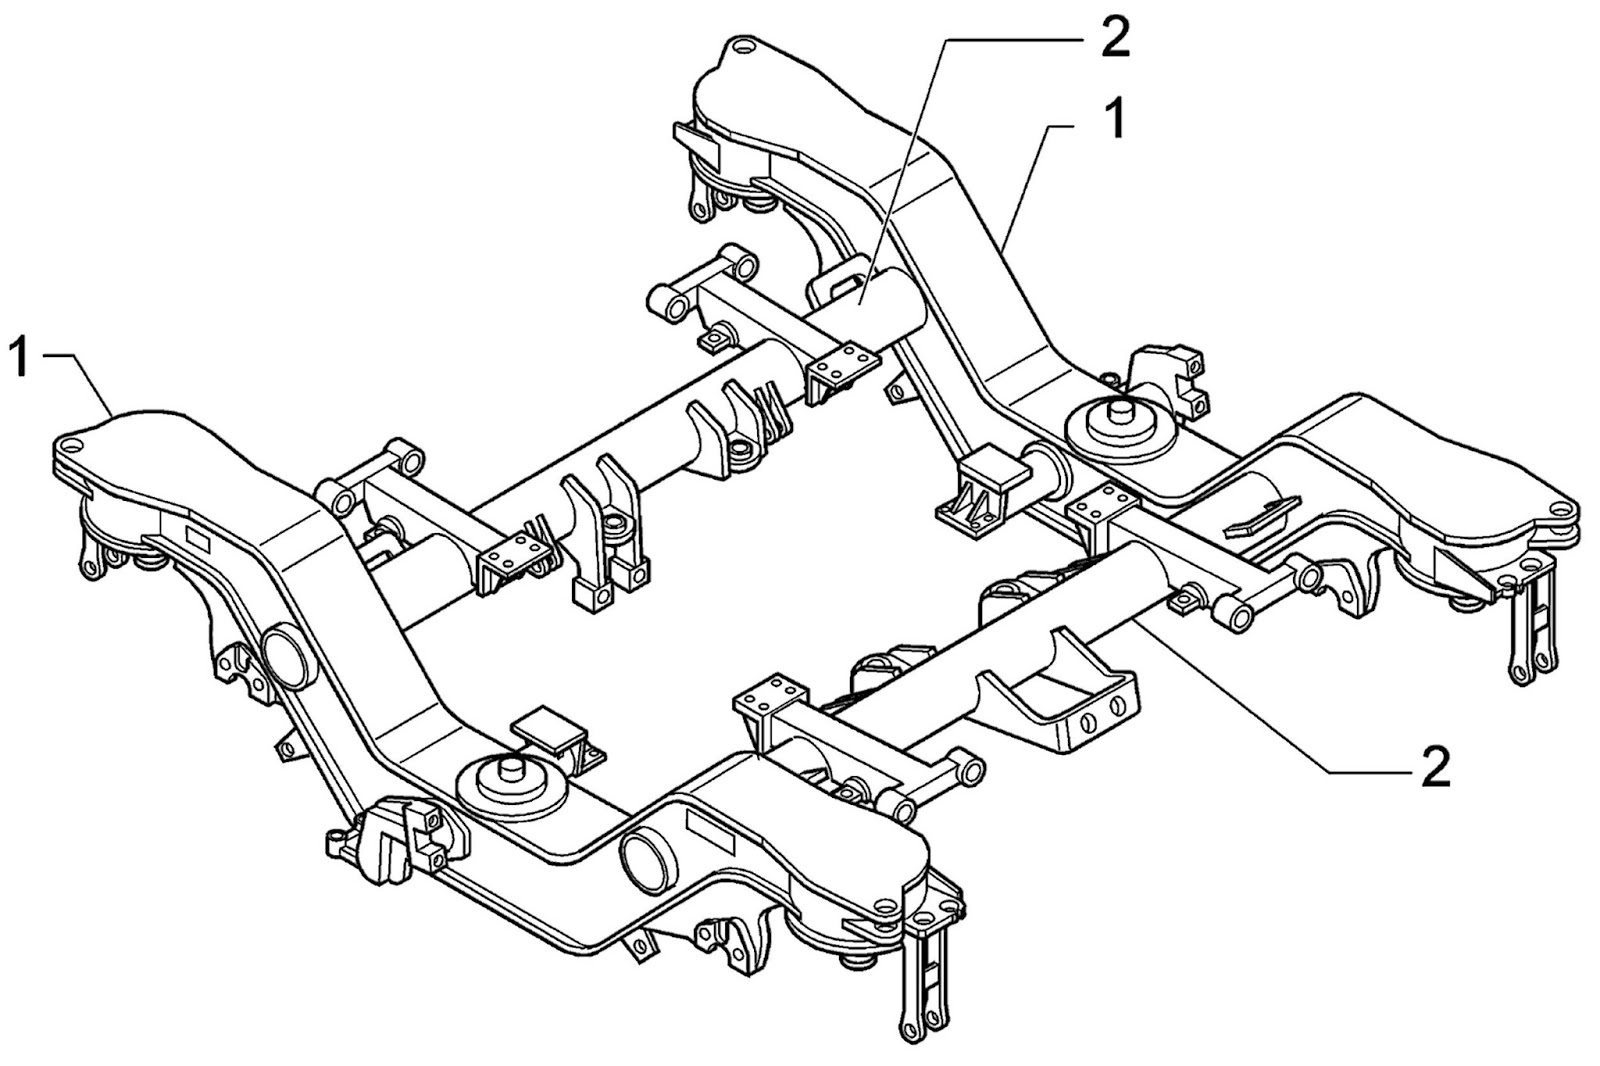 Brake System Setup further Shock absorbers drawing in addition Oem Power Take Off Transfer Case Seal 2006 2012 361882653709 together with Honda News Cars 12 together with Safety Roll Cage. on car suspension parts